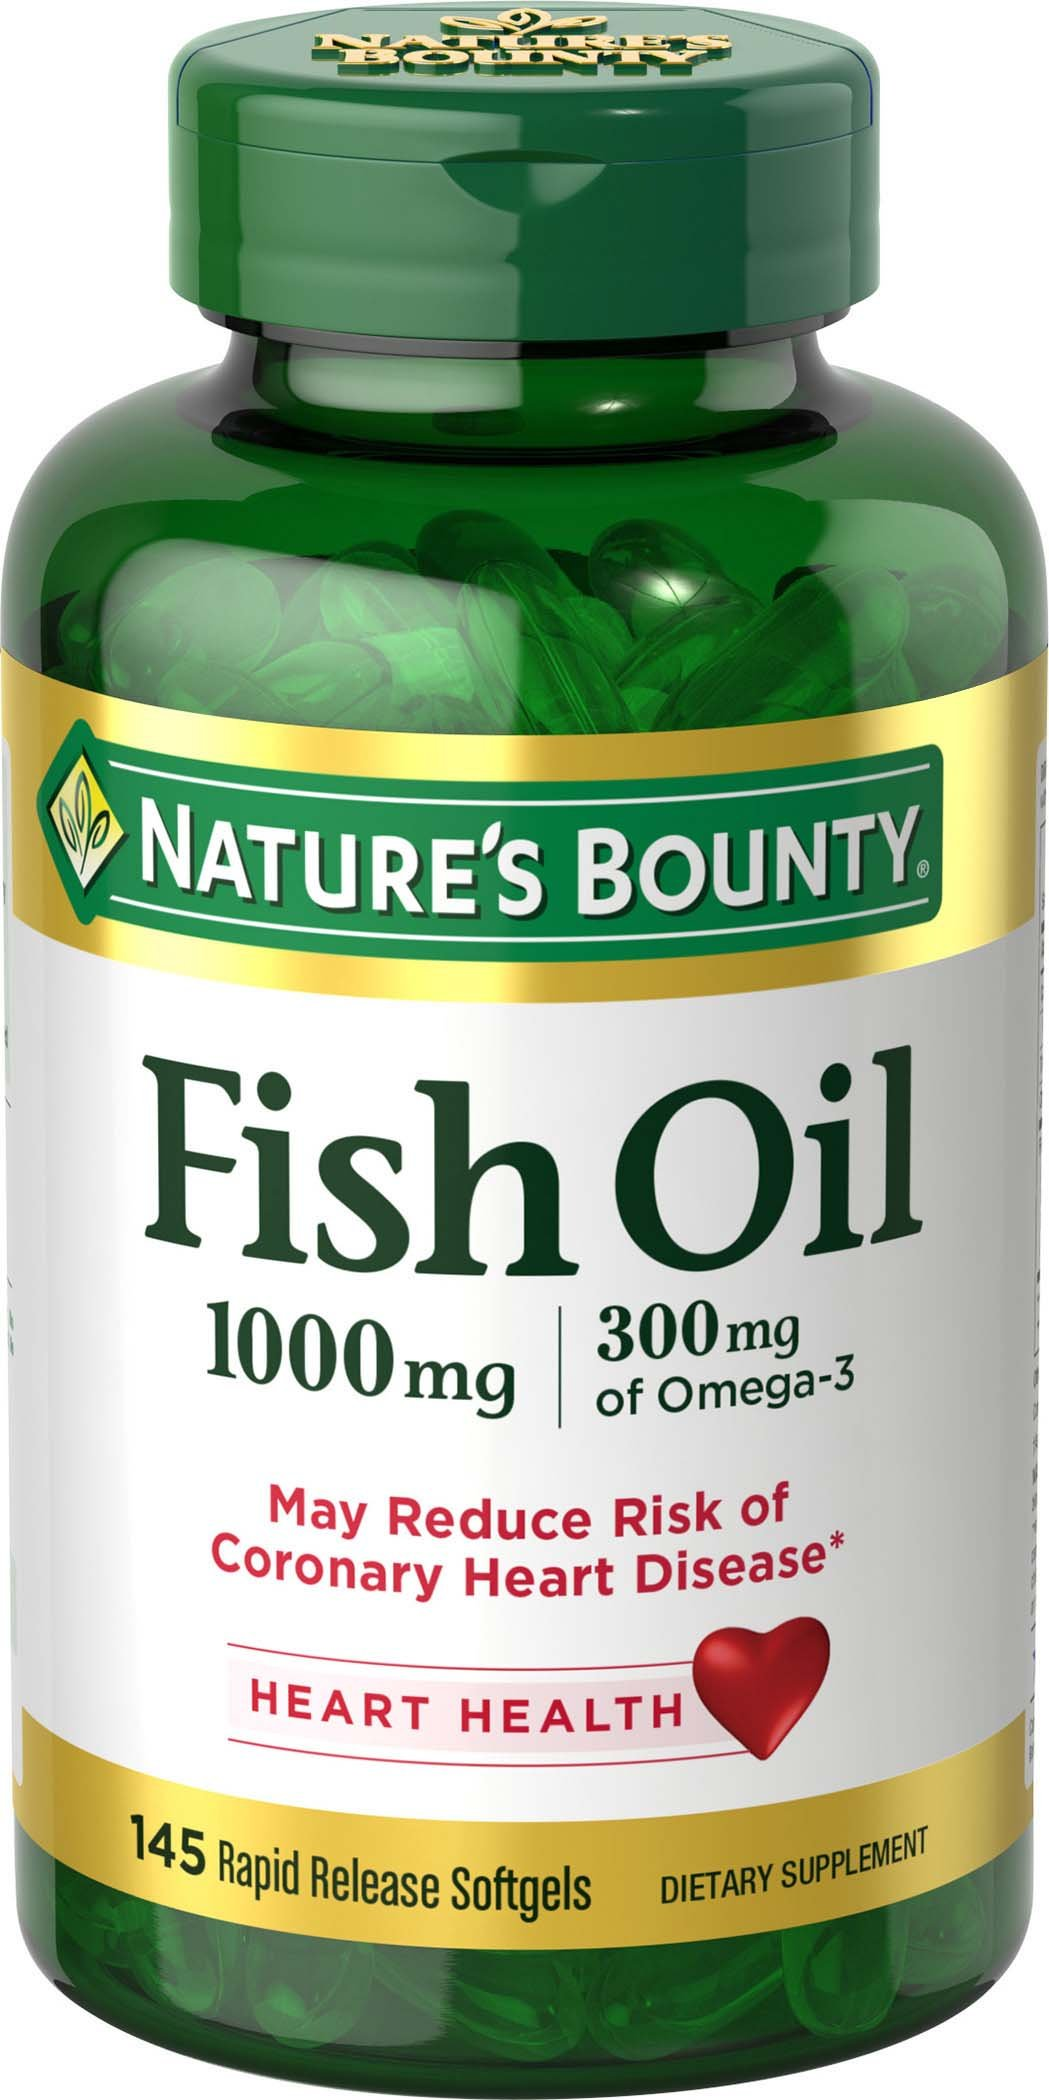 Nature's Bounty Fish Oil Omega-3 1000 mg Softgels 145 ea by Nature's Bounty